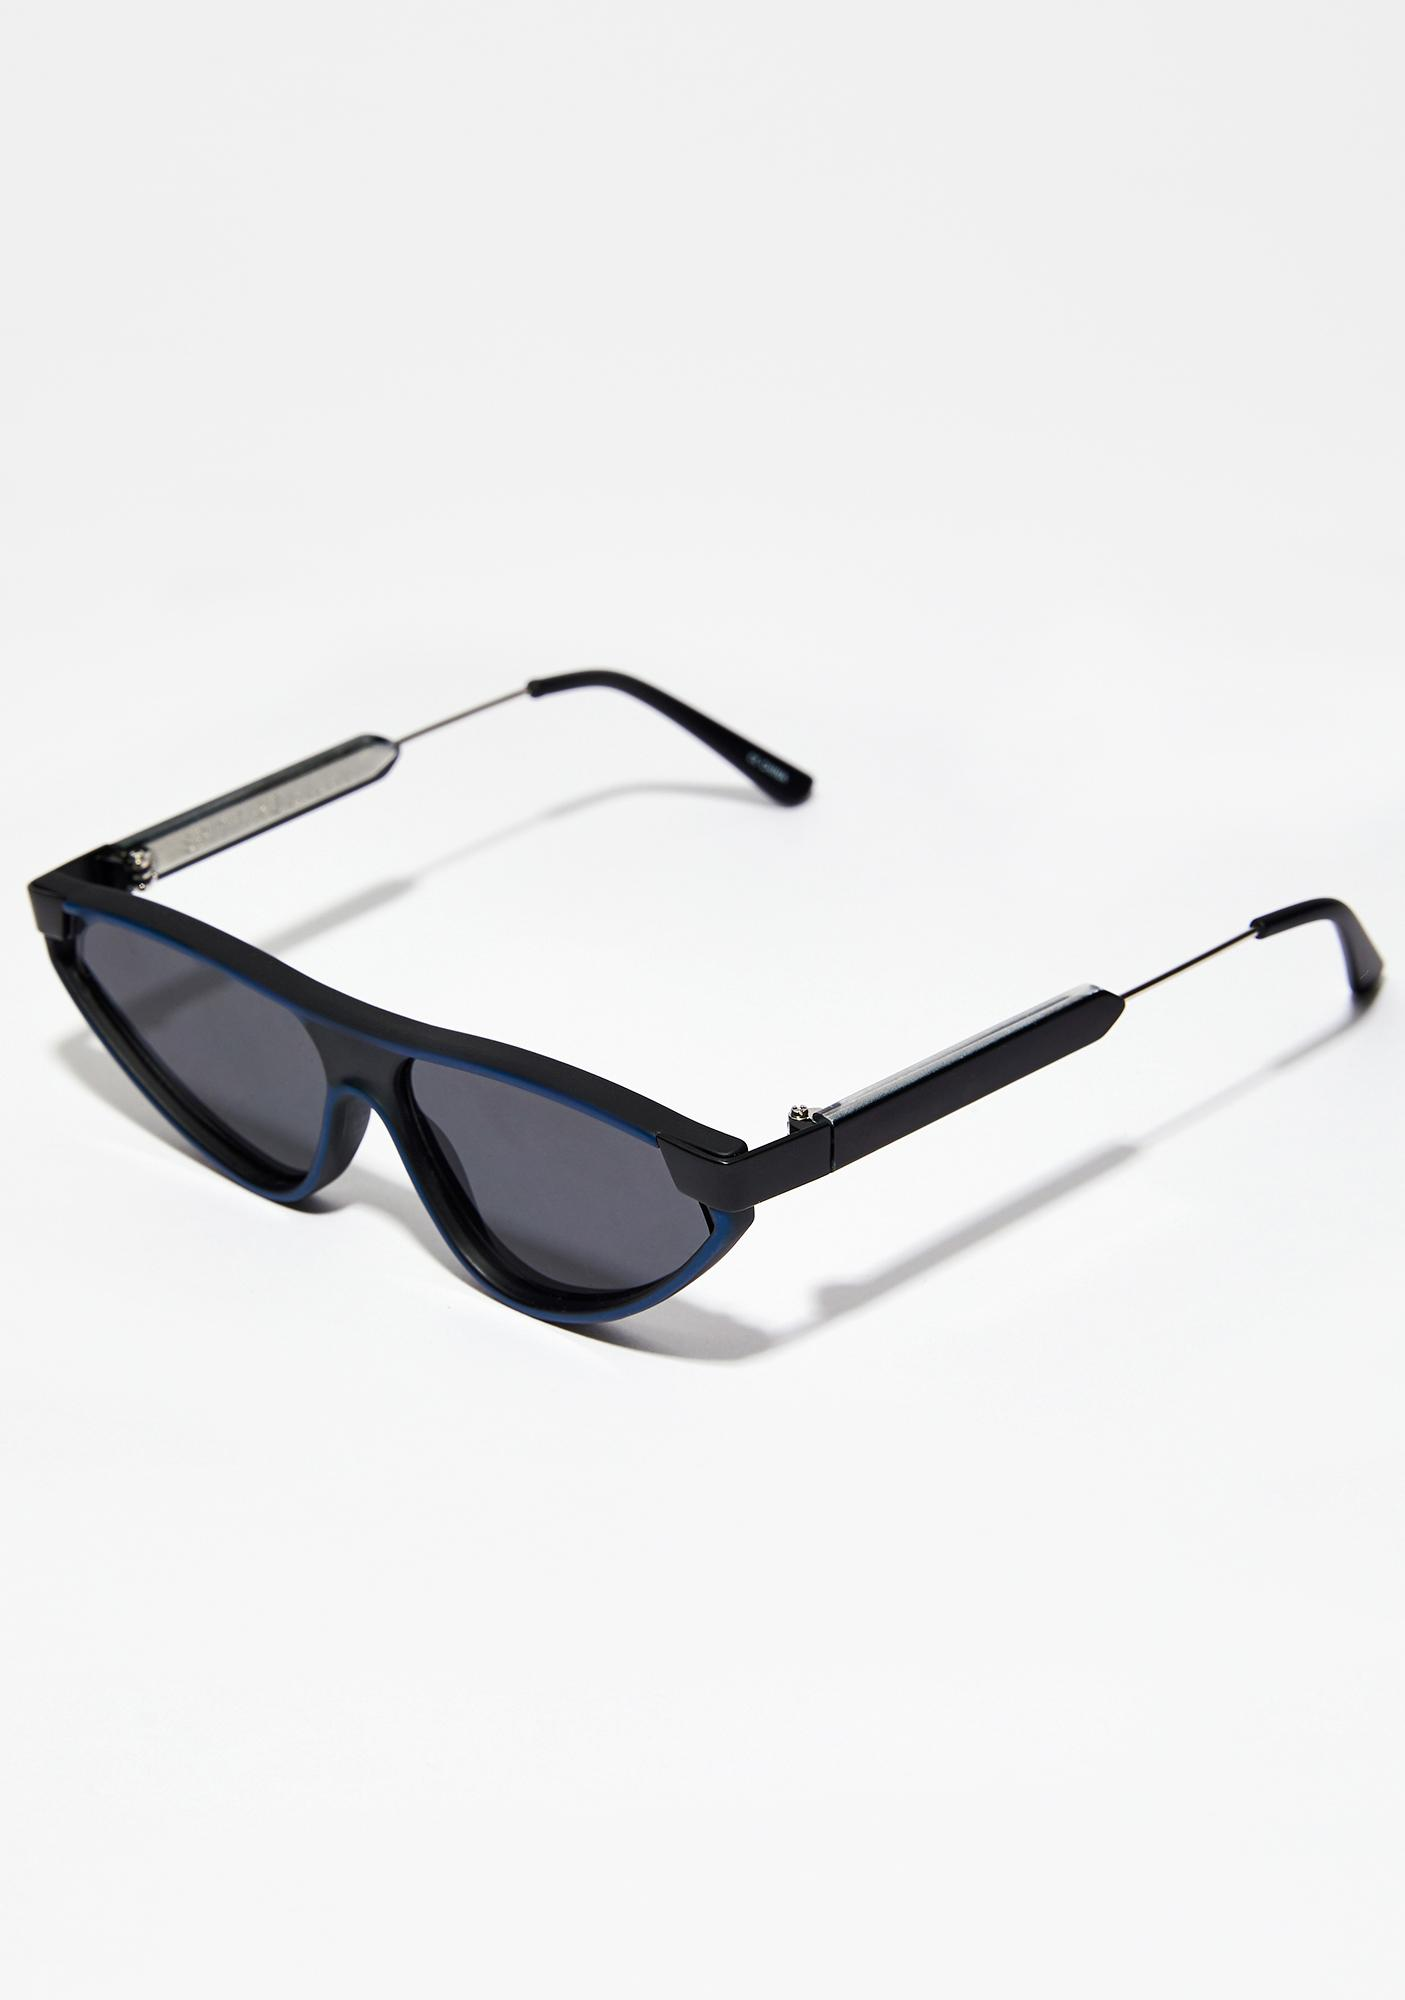 Spitfire Navy Snap Sunglasses